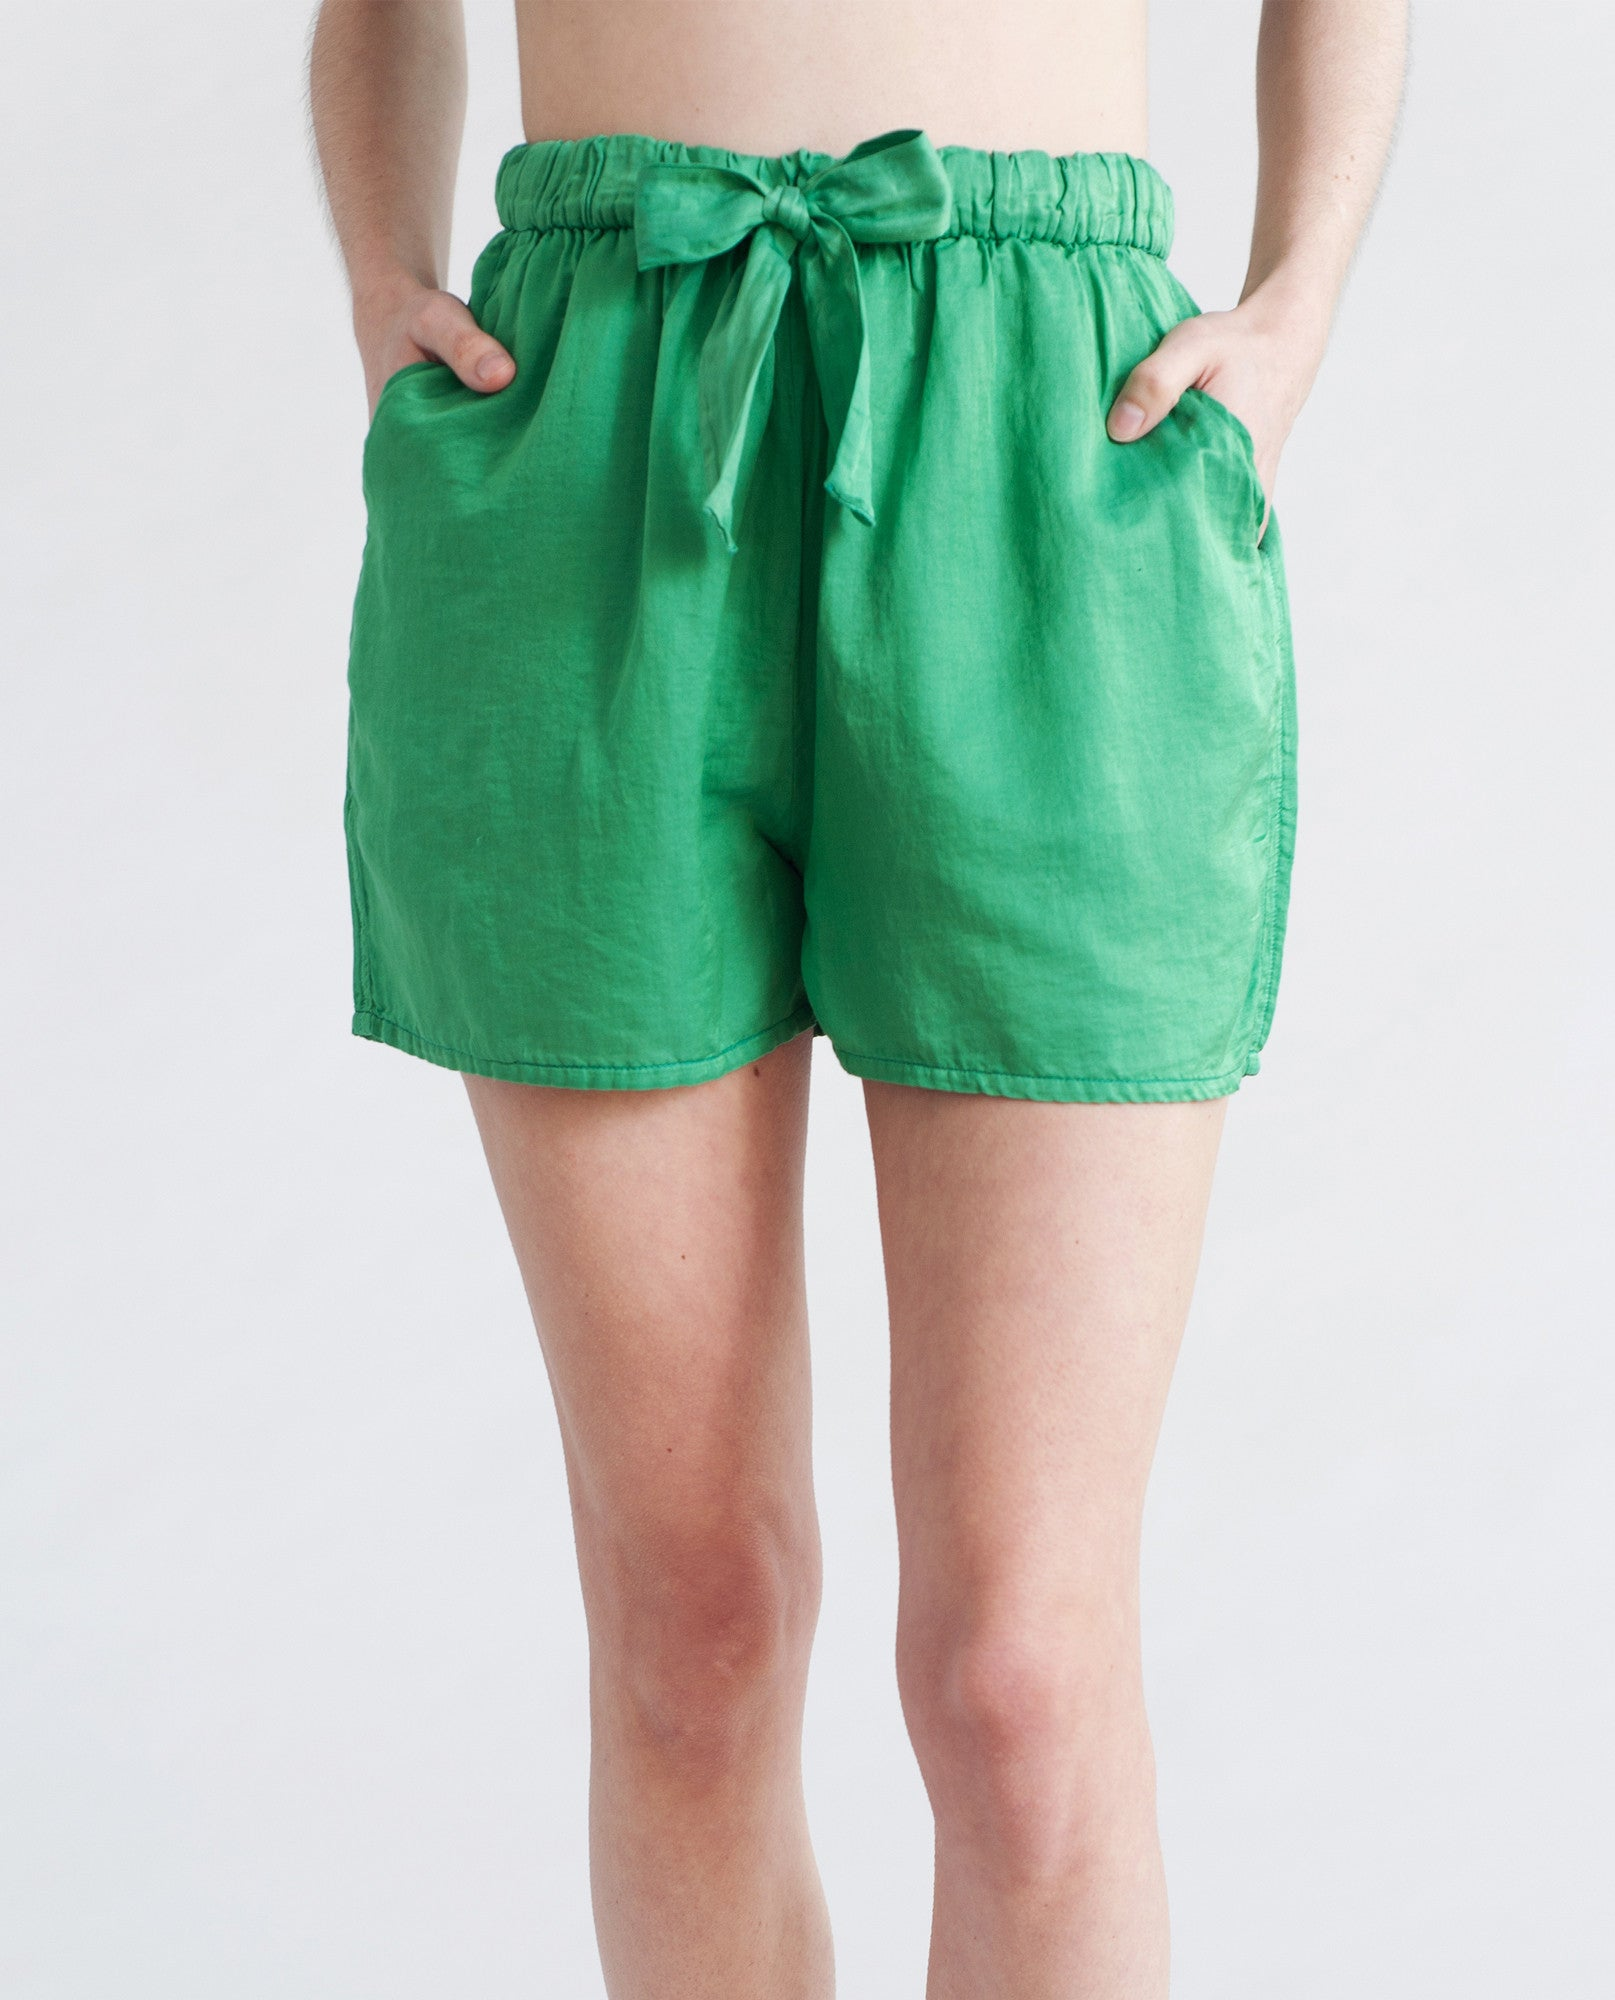 TANSY Cotton And Silk Shorts In Bright Green